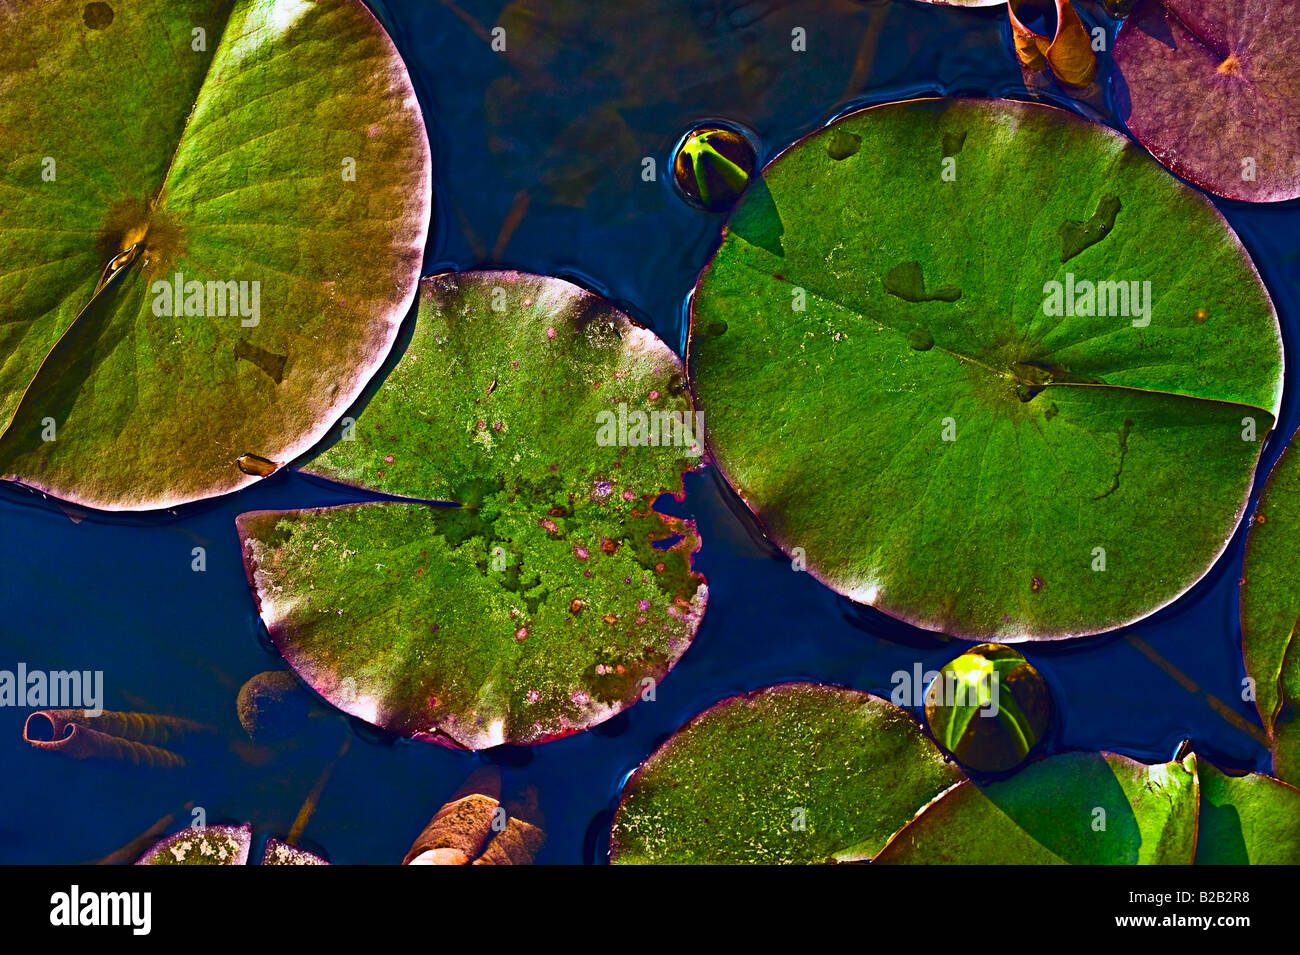 lily pad and waterlily buds[High angle view] - Stock Image